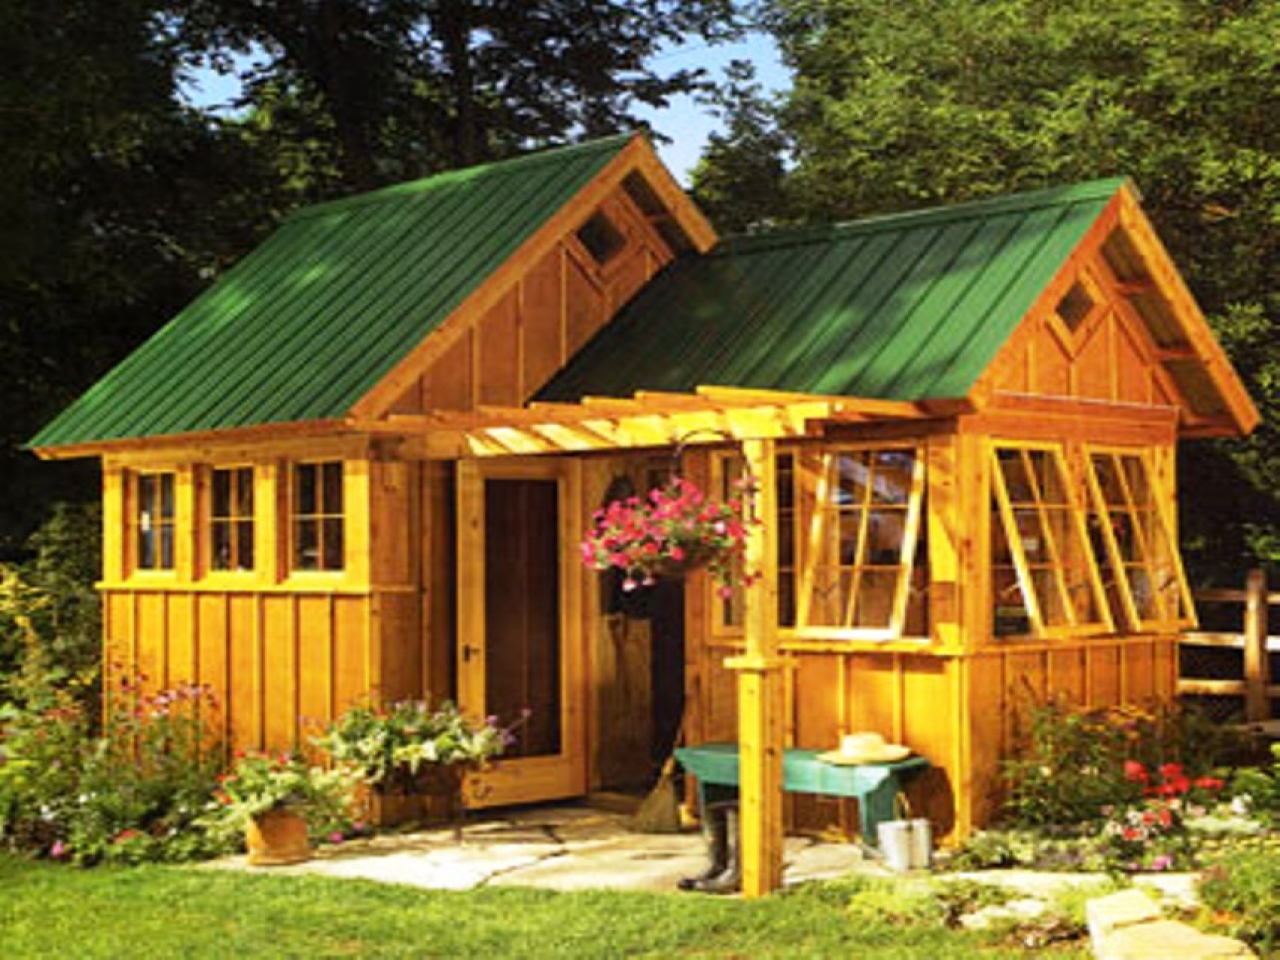 Garden Shed Ideas Beautiful Garden Sheds cabins design